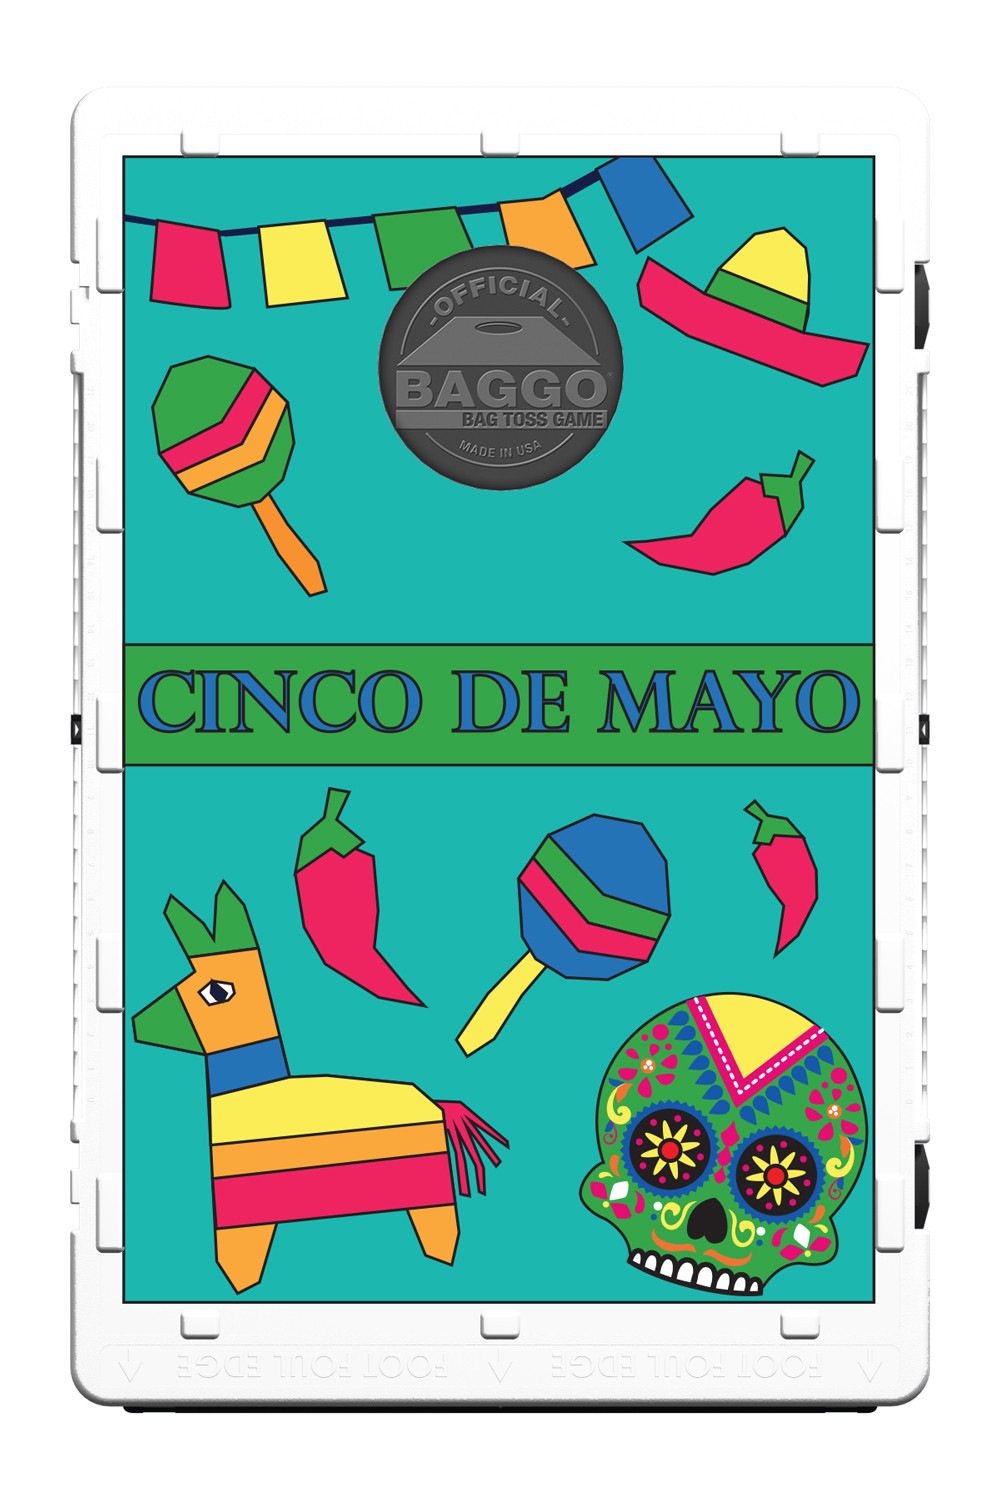 Cinco de Mayo Screens (only) by Baggo